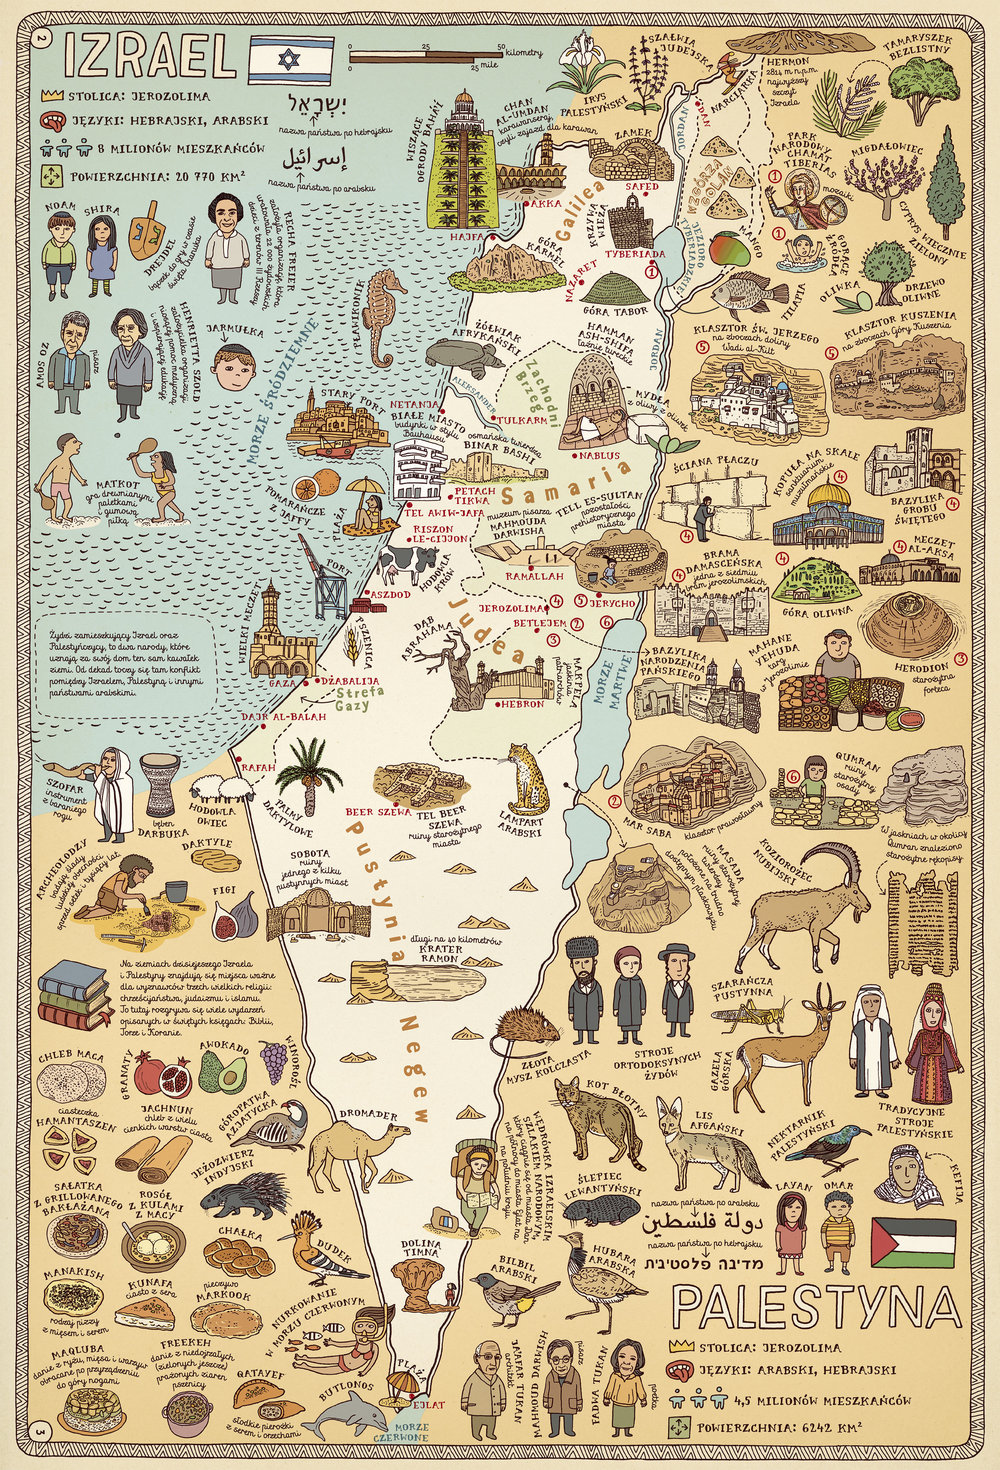 Never published and never shown before to public our attempt to create map of Israel and Palestine.